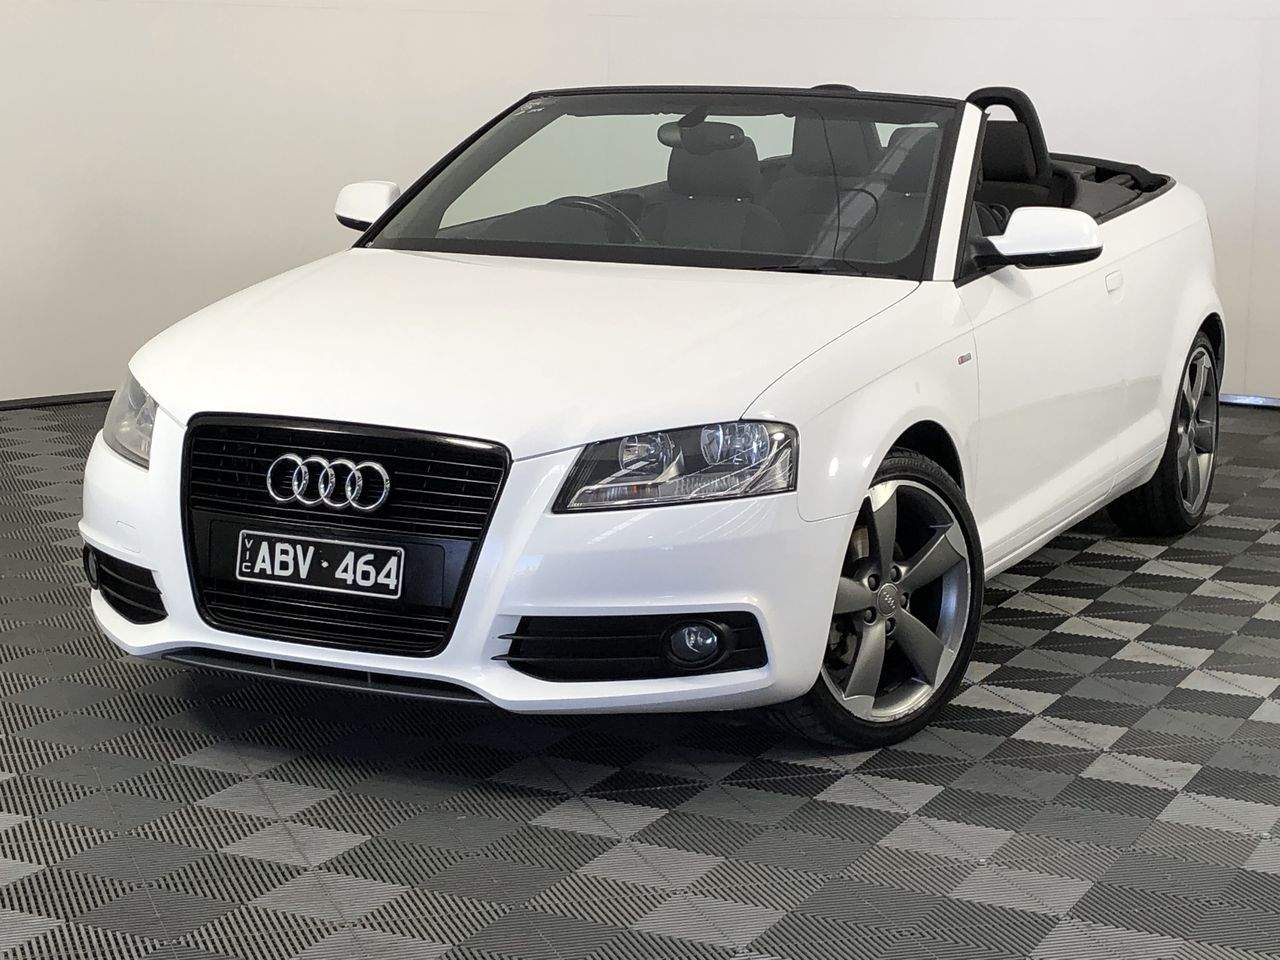 2012 Audi A3 1.8 TFSI Attraction 8P Automatic Convertible